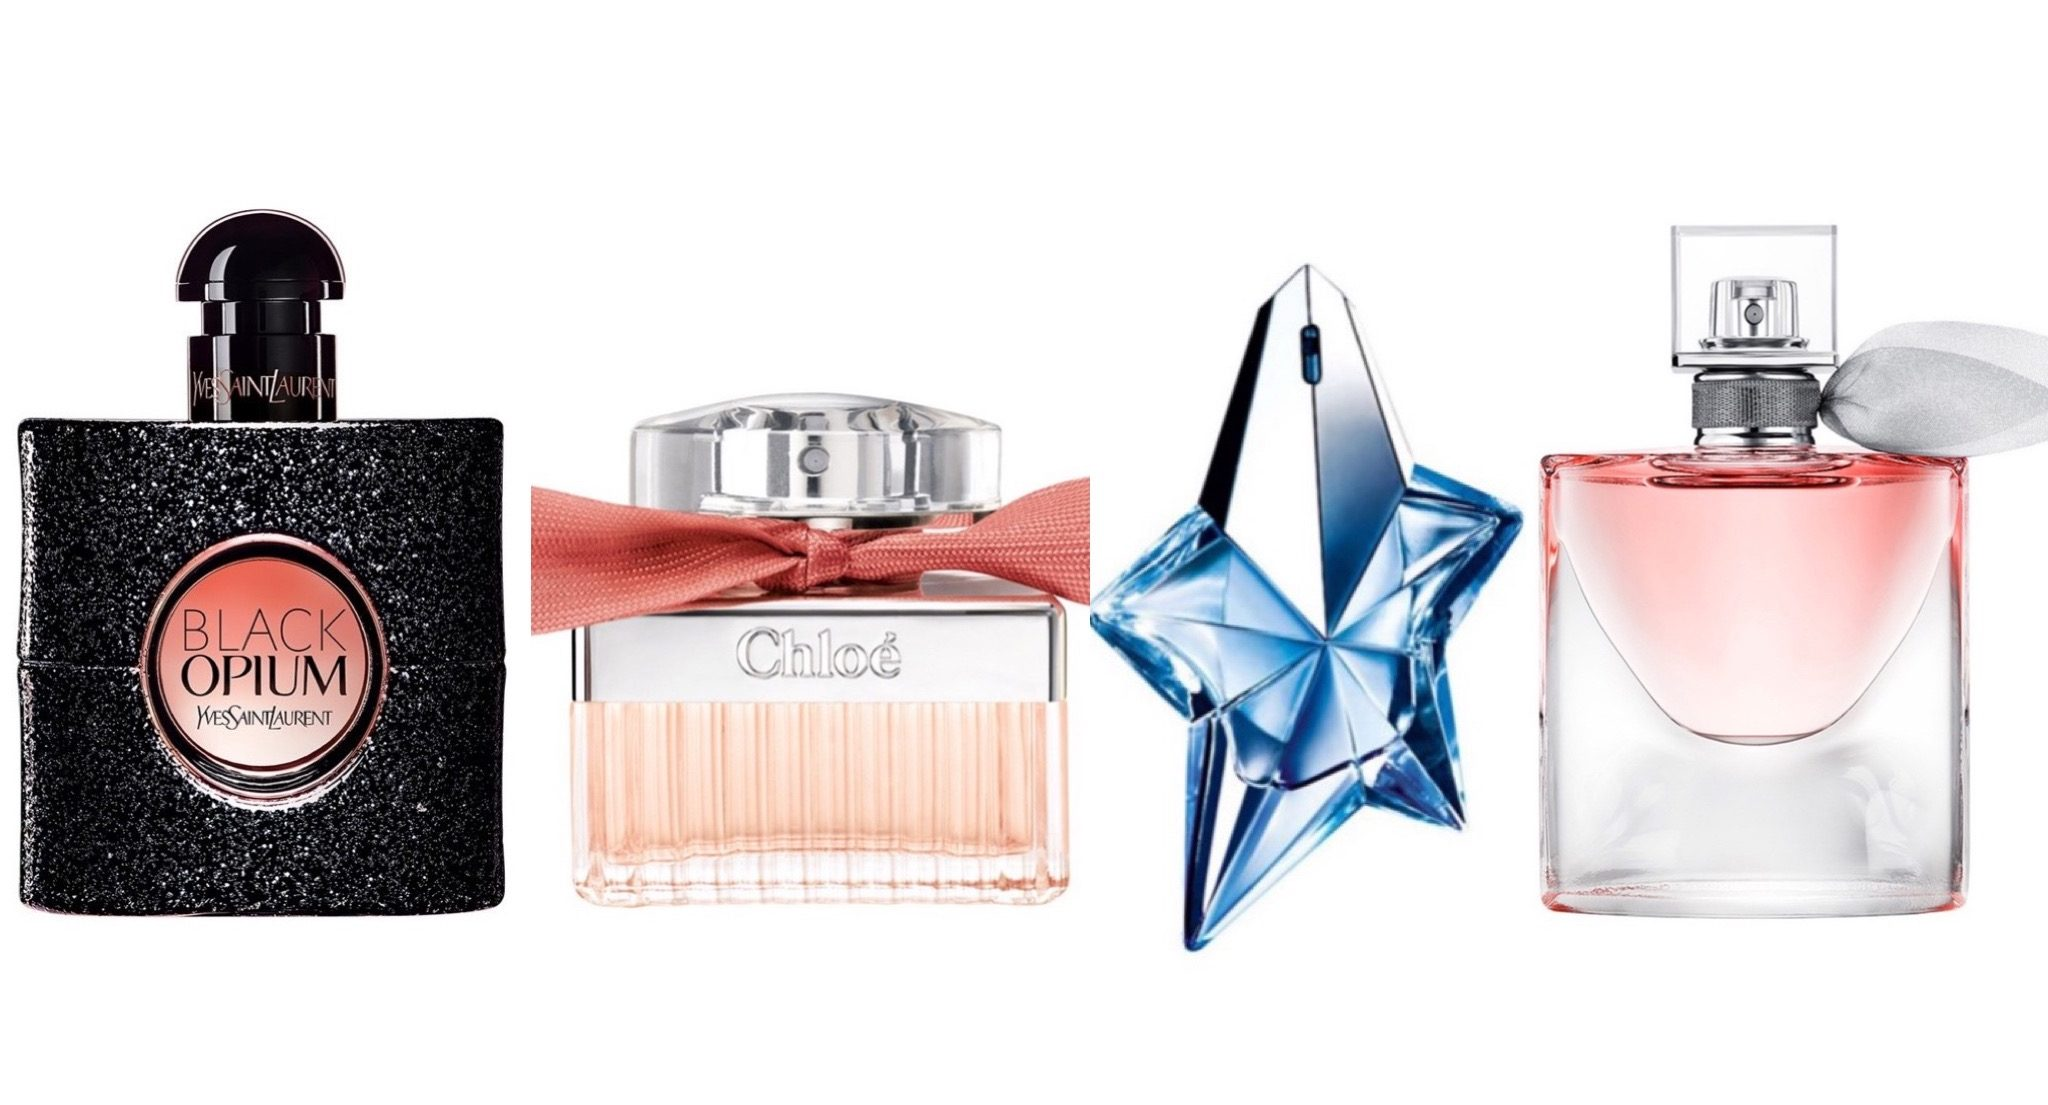 Poundland is selling designer dupes of YSL, Chloe, Thierry Mugler and Lancome perfumes for a just £1!